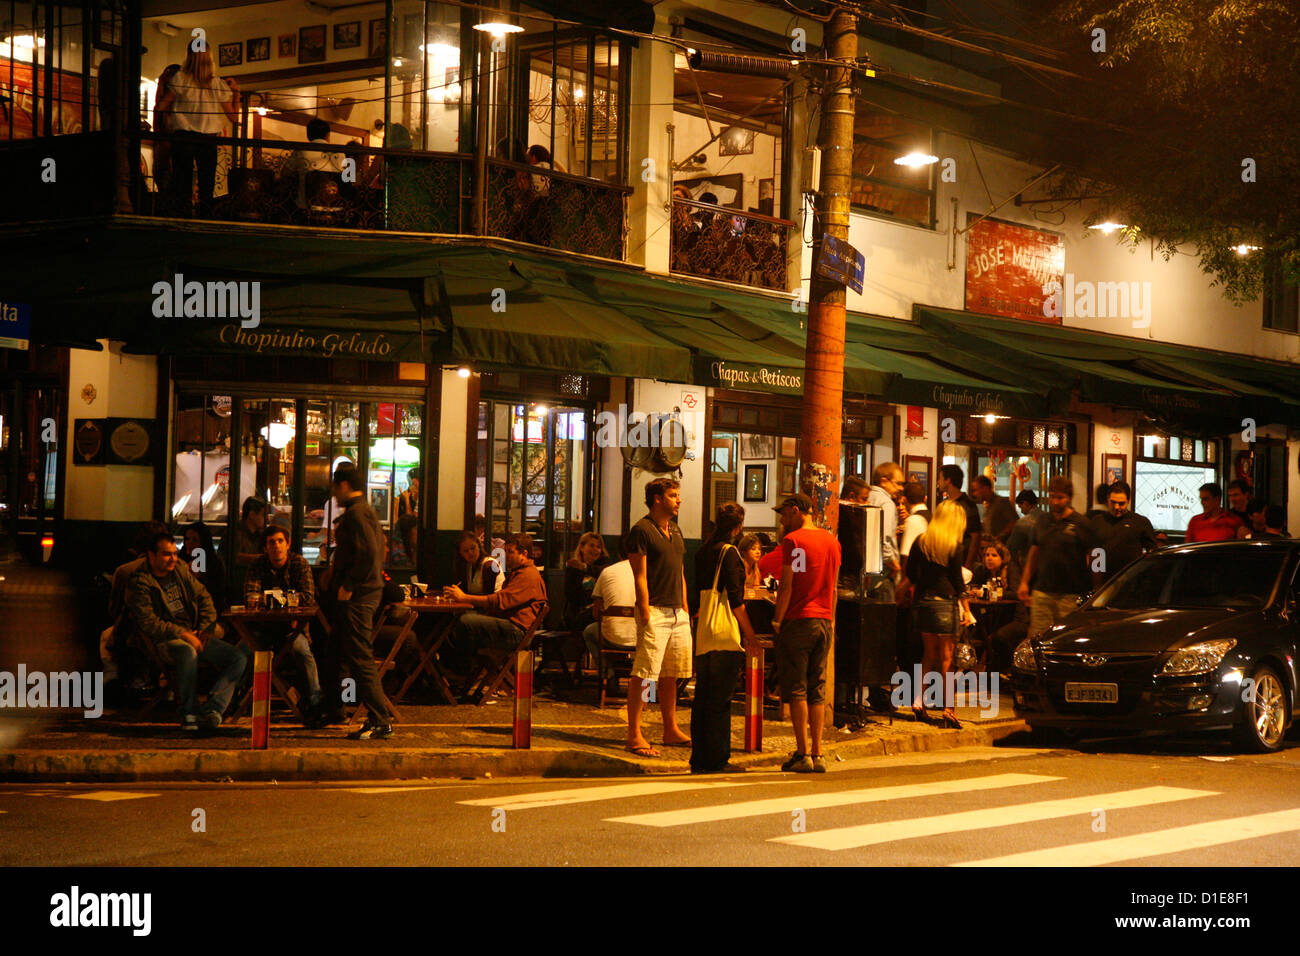 People in the Vila Madalena area known for its bars, restaurants and nighlife, Sao Paulo, Brazil, South America - Stock Image